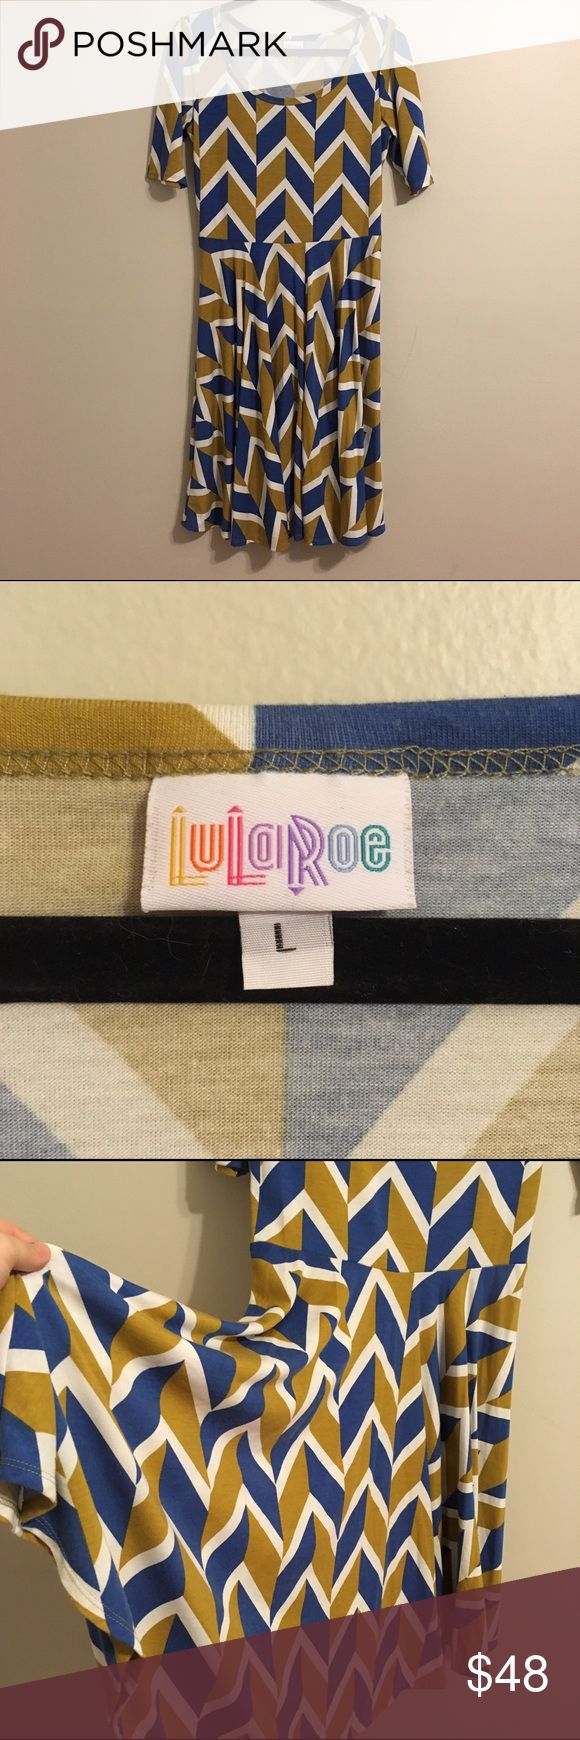 🆕LuLaRoe Yellow & Blue Chevron Nicole LuLaRoe Nicole dress in a fun alternating chevron pattern. Nicole has a full circle skirt. Dress in excellent used condition. Offers welcome, bundles encouraged! LuLaRoe Dresses